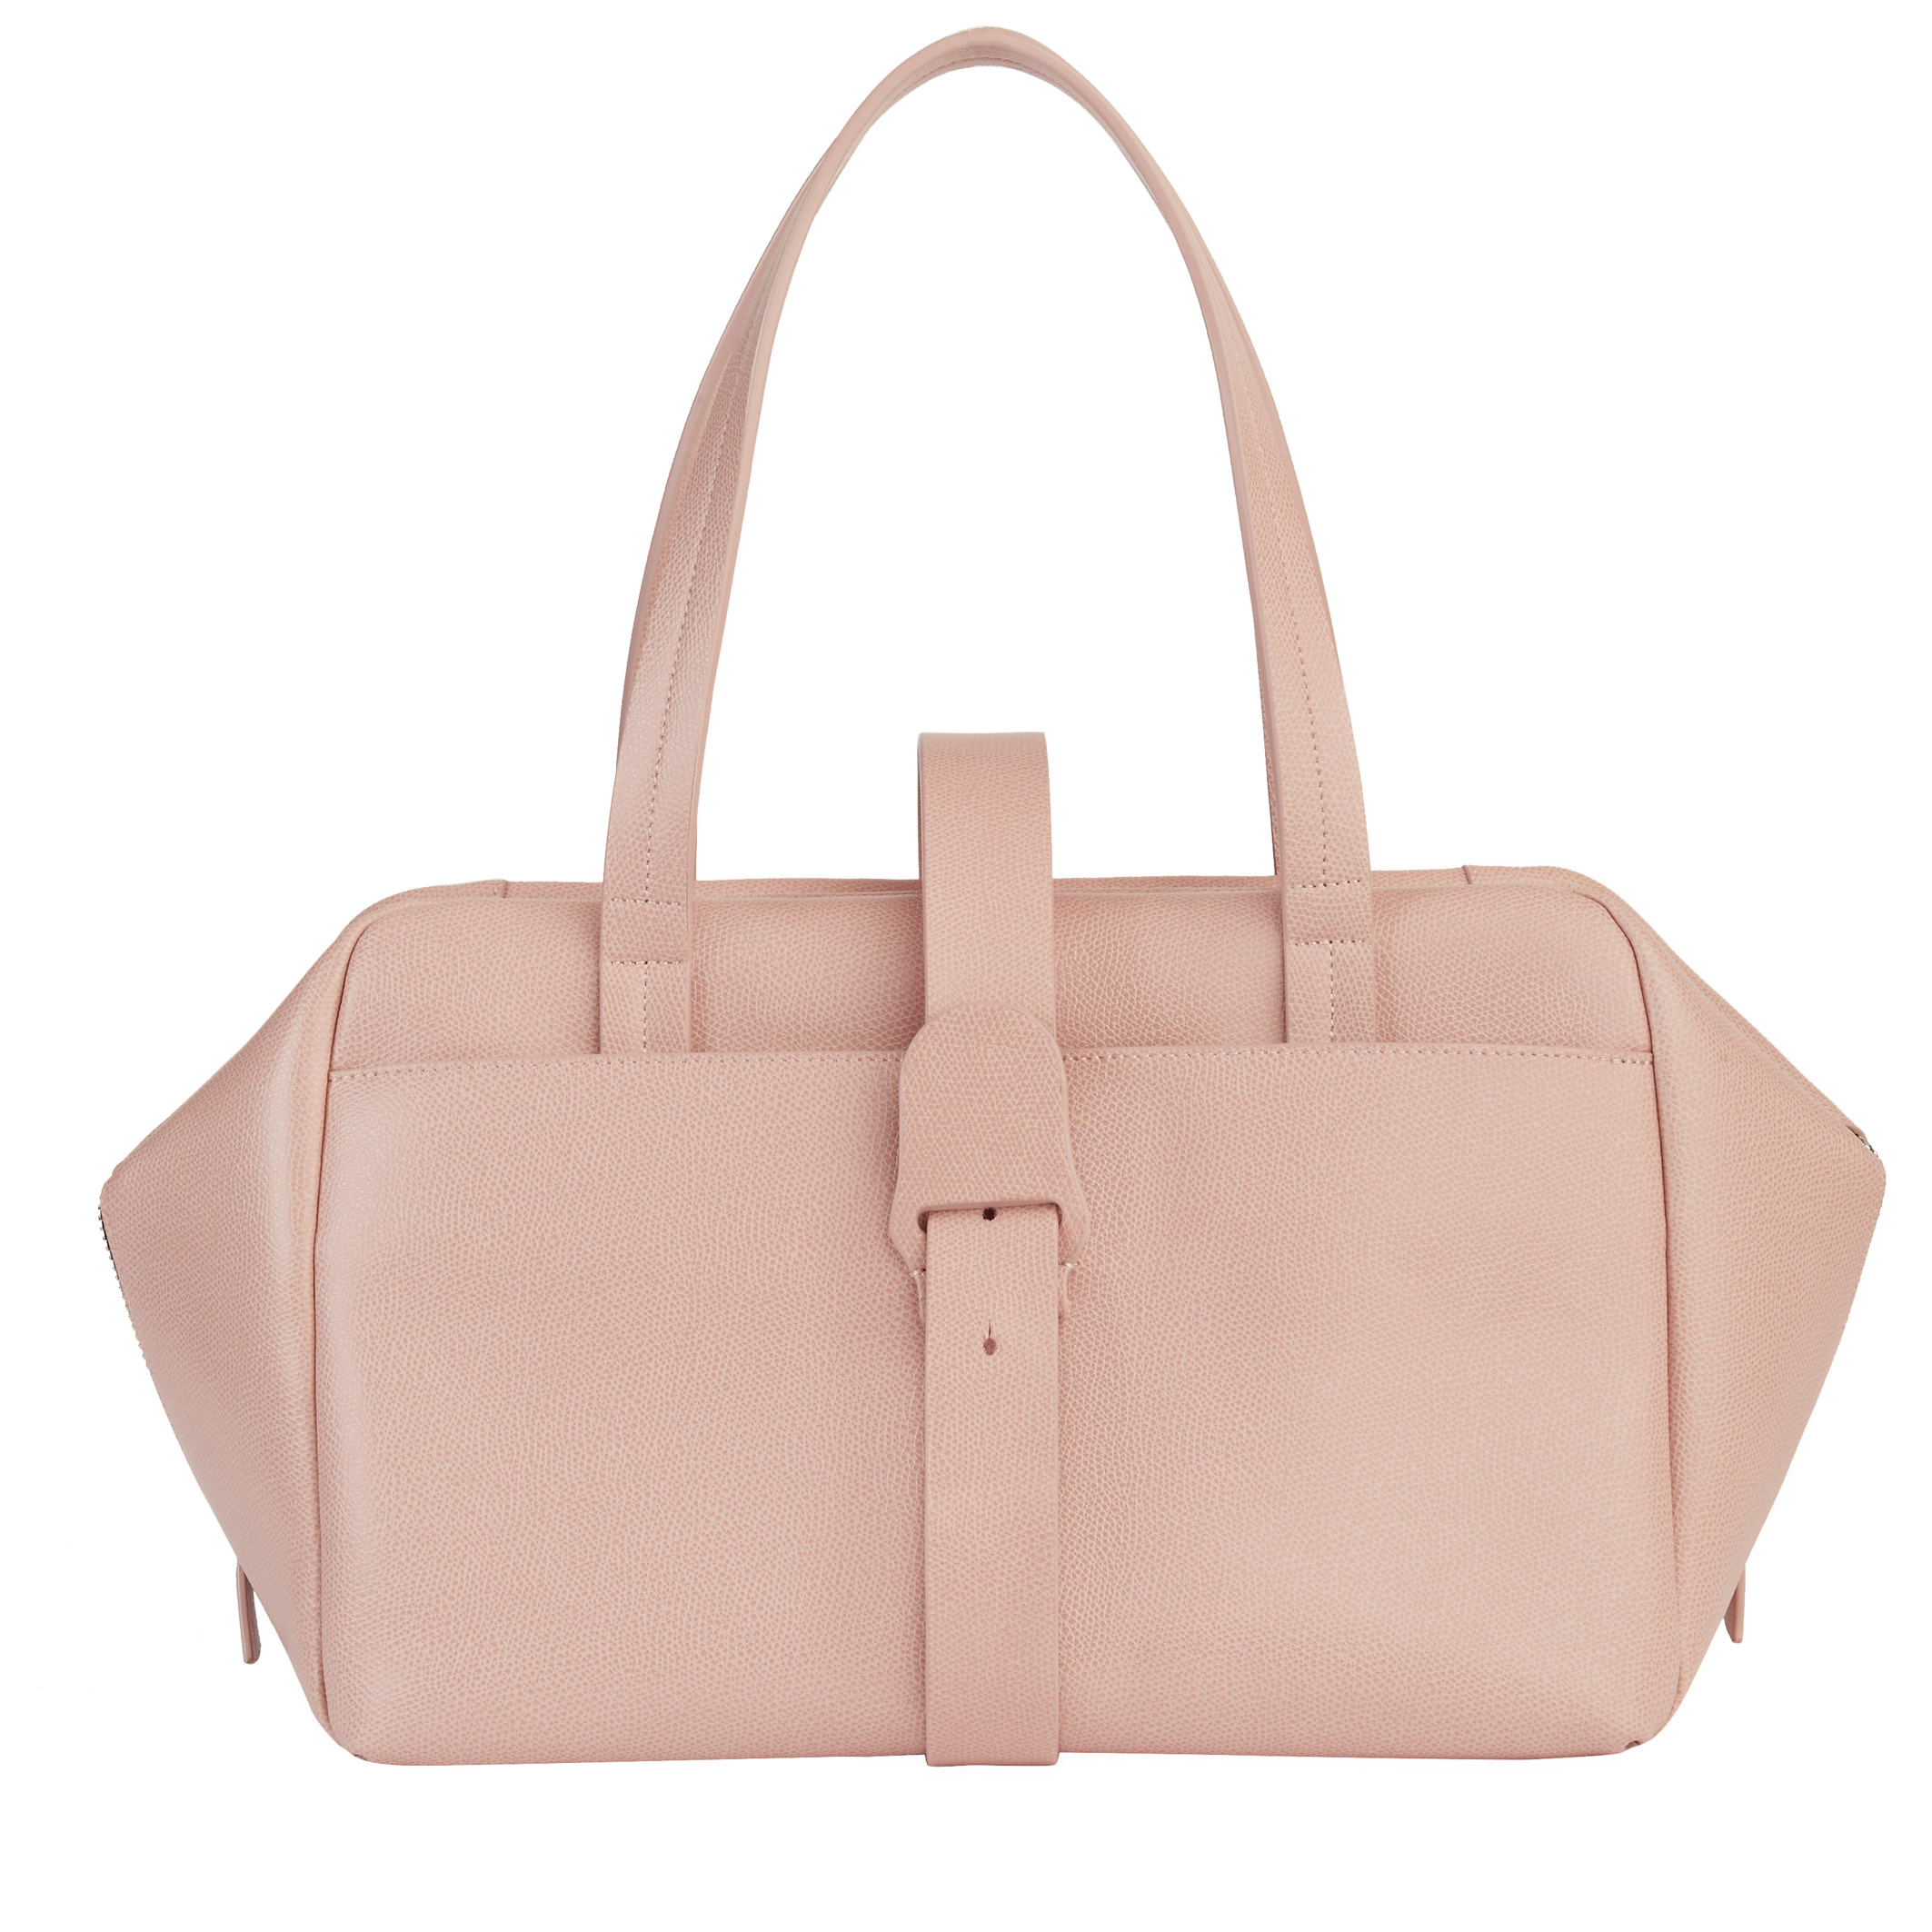 Doctor Bag in Blush, $895.